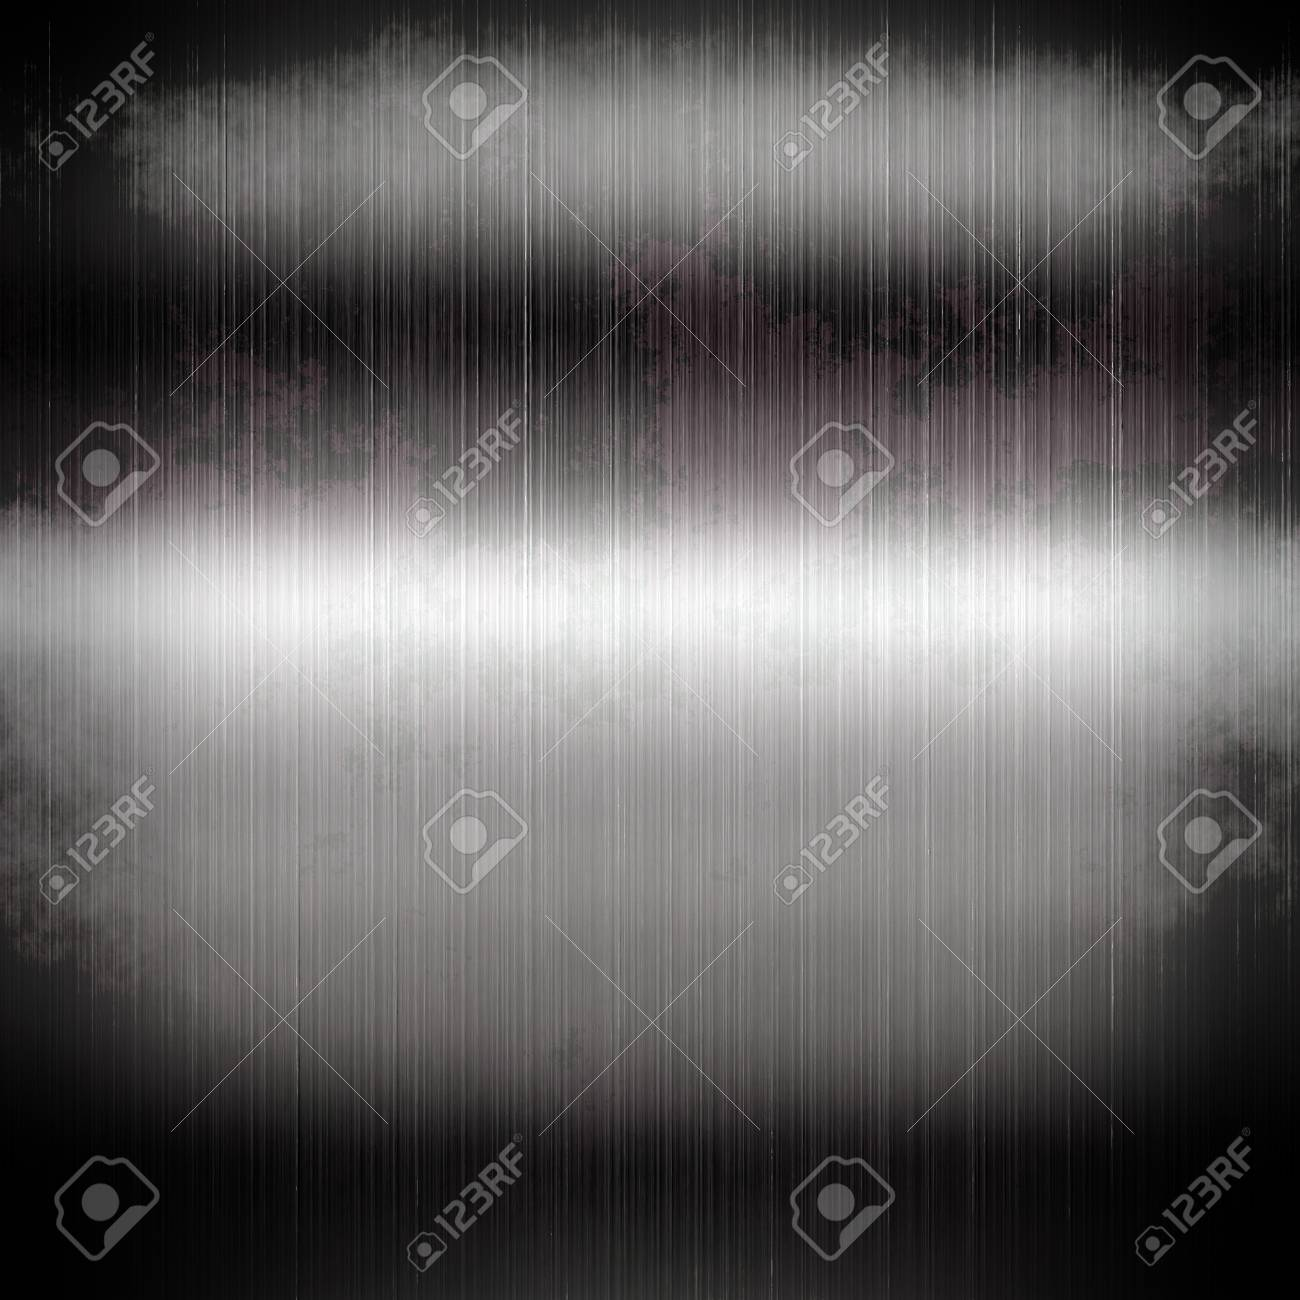 The abstract metal surface darkened at the edges Stock Photo - 18518397